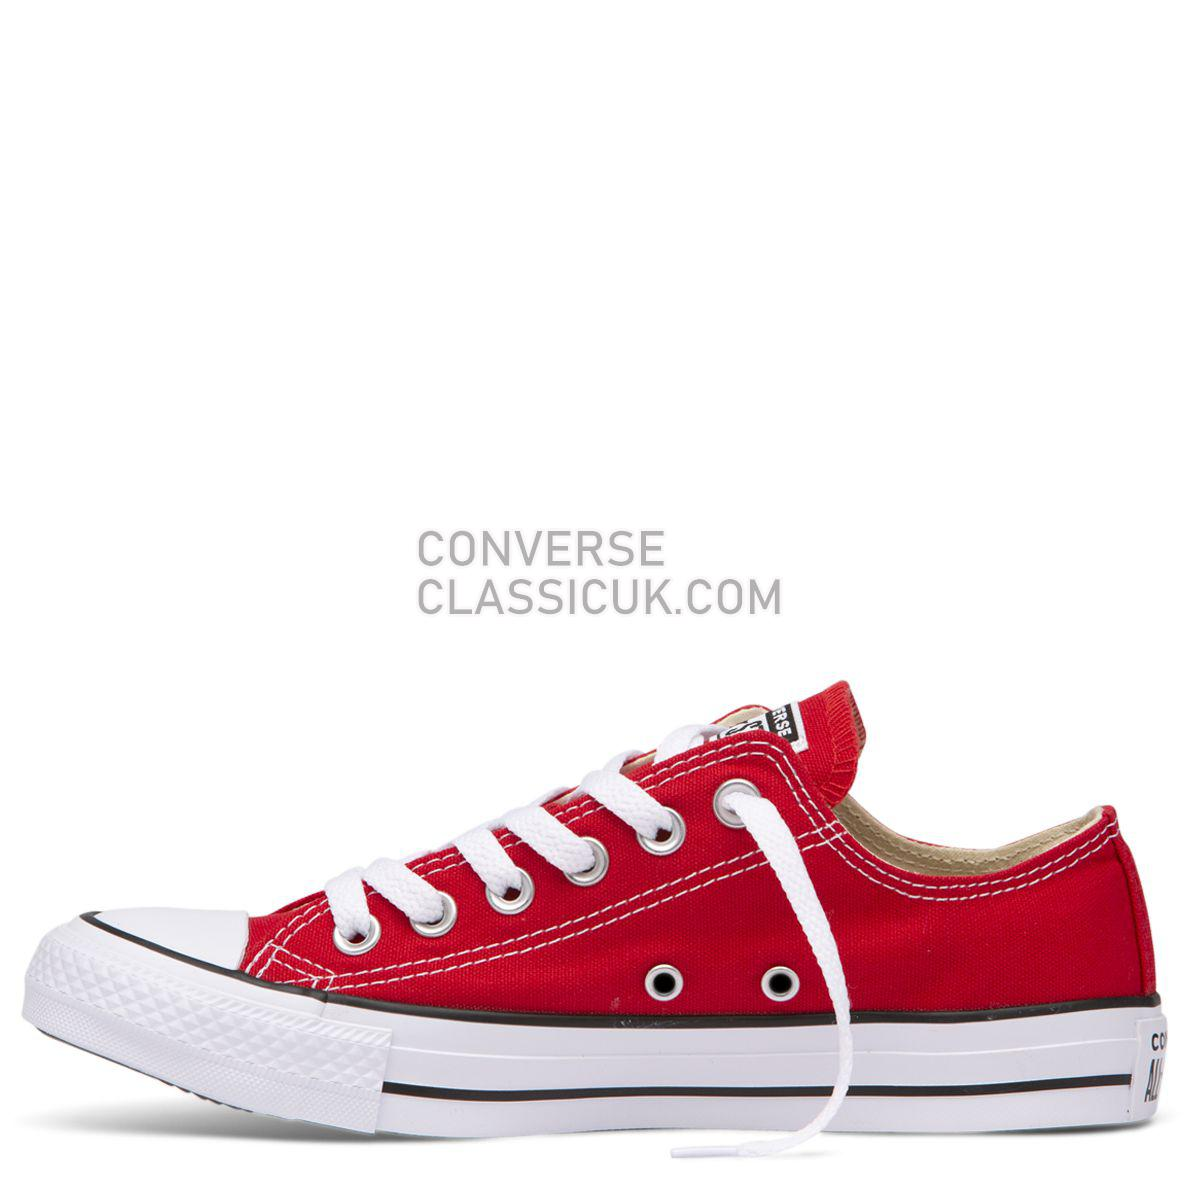 Converse Chuck Taylor All Star Classic Colour Low Top Red Mens Womens Unisex 19696 Red Shoes